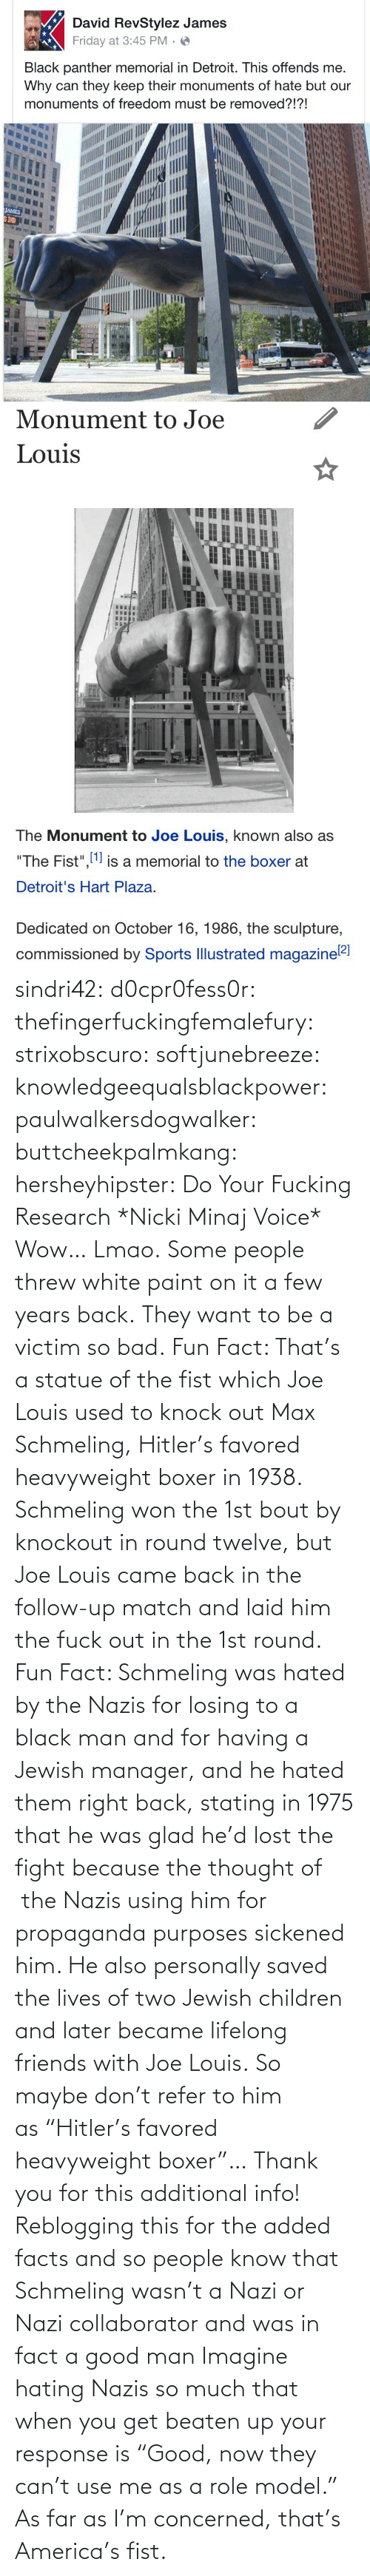 "years: sindri42:  d0cpr0fess0r:  thefingerfuckingfemalefury:  strixobscuro:  softjunebreeze:  knowledgeequalsblackpower:  paulwalkersdogwalker:   buttcheekpalmkang:   hersheyhipster:  Do Your Fucking Research *Nicki Minaj Voice*    Wow… Lmao.   Some people threw white paint on it a few years back.   They want to be a victim so bad.  Fun Fact: That's a statue of the fist which Joe Louis used to knock out Max Schmeling, Hitler's favored heavyweight boxer in 1938. Schmeling won the 1st bout by knockout in round twelve, but Joe Louis came back in the follow-up match and laid him the fuck out in the 1st round.  Fun Fact: Schmeling was hated by the Nazis for losing to a black man and for having a Jewish manager, and he hated them right back, stating in 1975 that he was glad he'd lost the fight because the thought of  the Nazis using him for propaganda purposes sickened him. He also personally saved the lives of two Jewish children and later became lifelong friends with Joe Louis. So maybe don't refer to him as ""Hitler's favored heavyweight boxer""…  Thank you for this additional info! Reblogging this for the added facts and so people know that Schmeling wasn't a Nazi or Nazi collaborator and was in fact a good man   Imagine hating Nazis so much that when you get beaten up your response is ""Good, now they can't use me as a role model.""  As far as I'm concerned, that's America's fist."